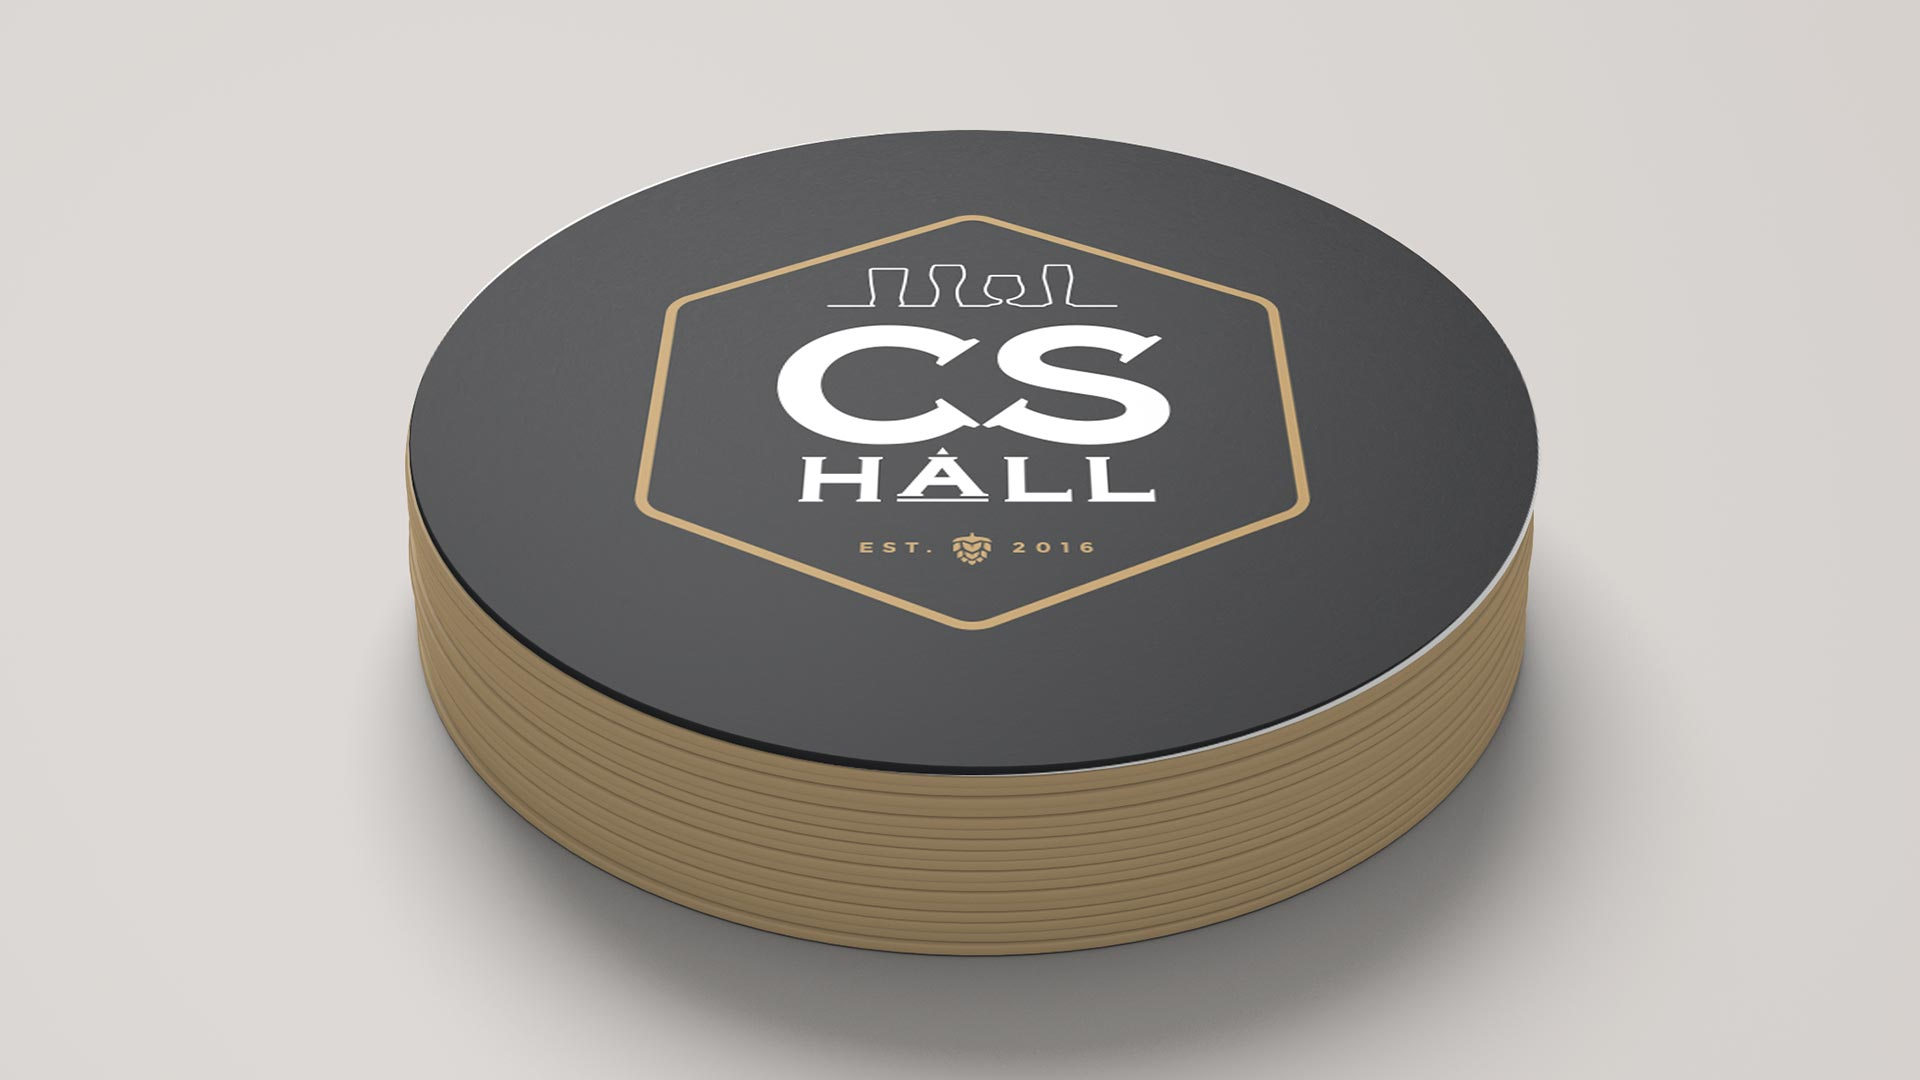 Cathedral Social Hall, Design, Cathedral Social Hall Coasters, Portfolio Image, Cathedral Social Hall Coaster - Brand Badge